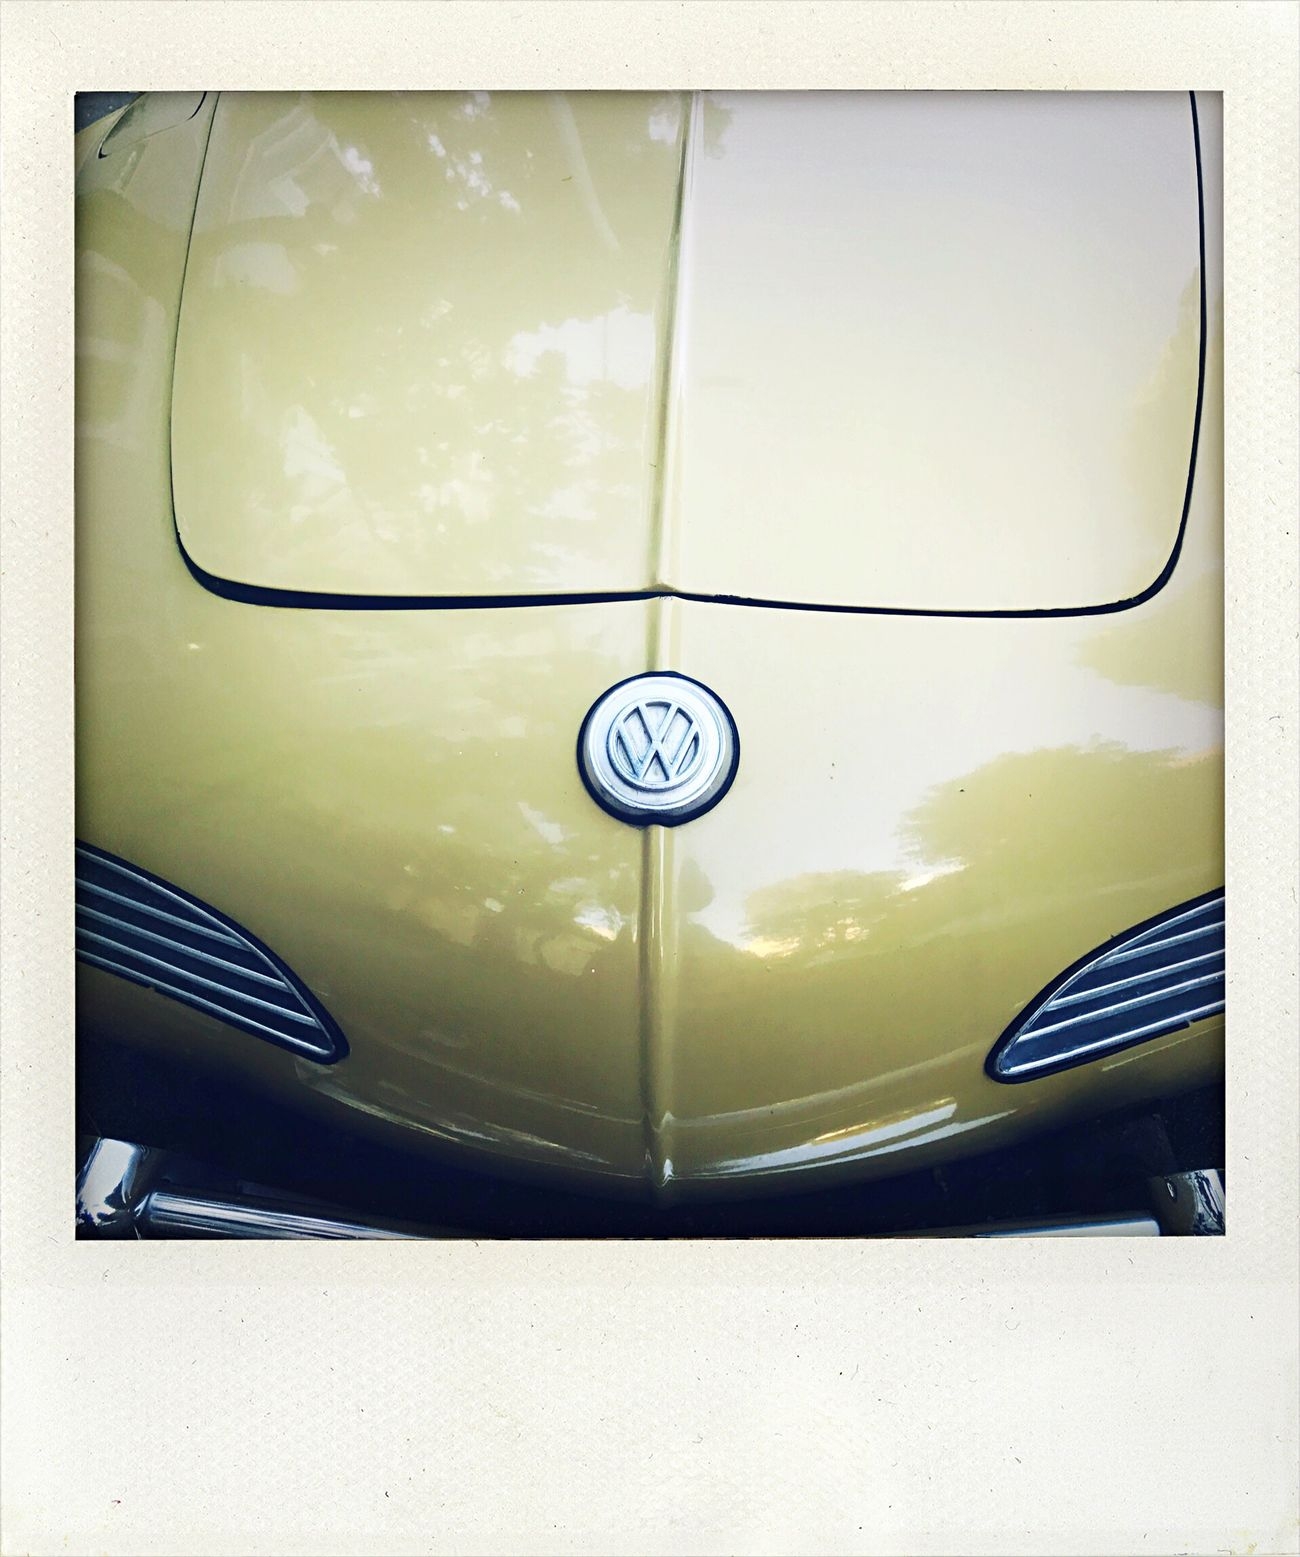 Land Vehicle Car Classic Car Karmann Ghia Shake It Photo Koduckgirl IPhoneography